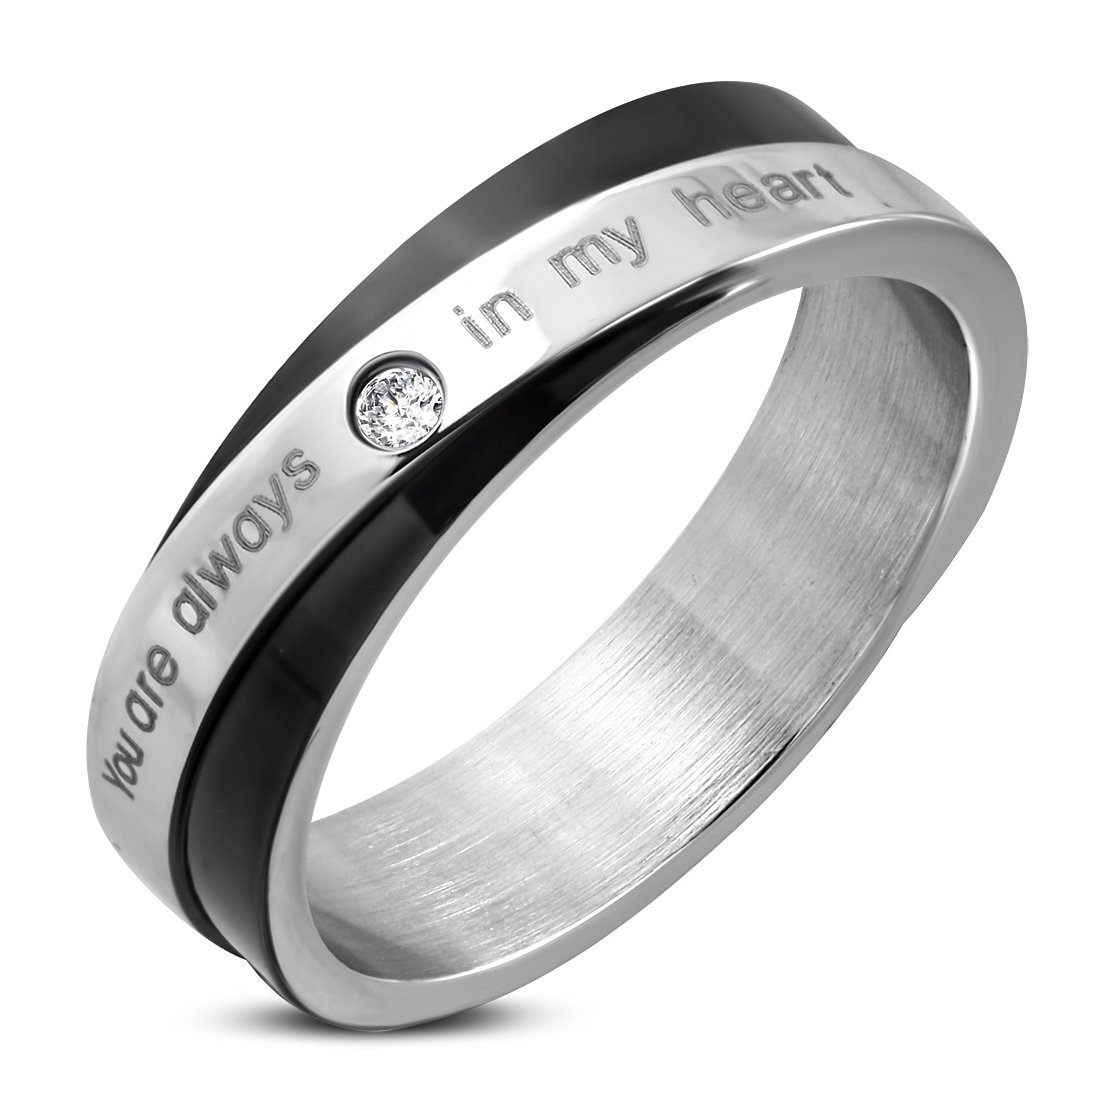 Stainless Steel 2 Color Affirmation-Love Wedding Band Ring with Clear CZ